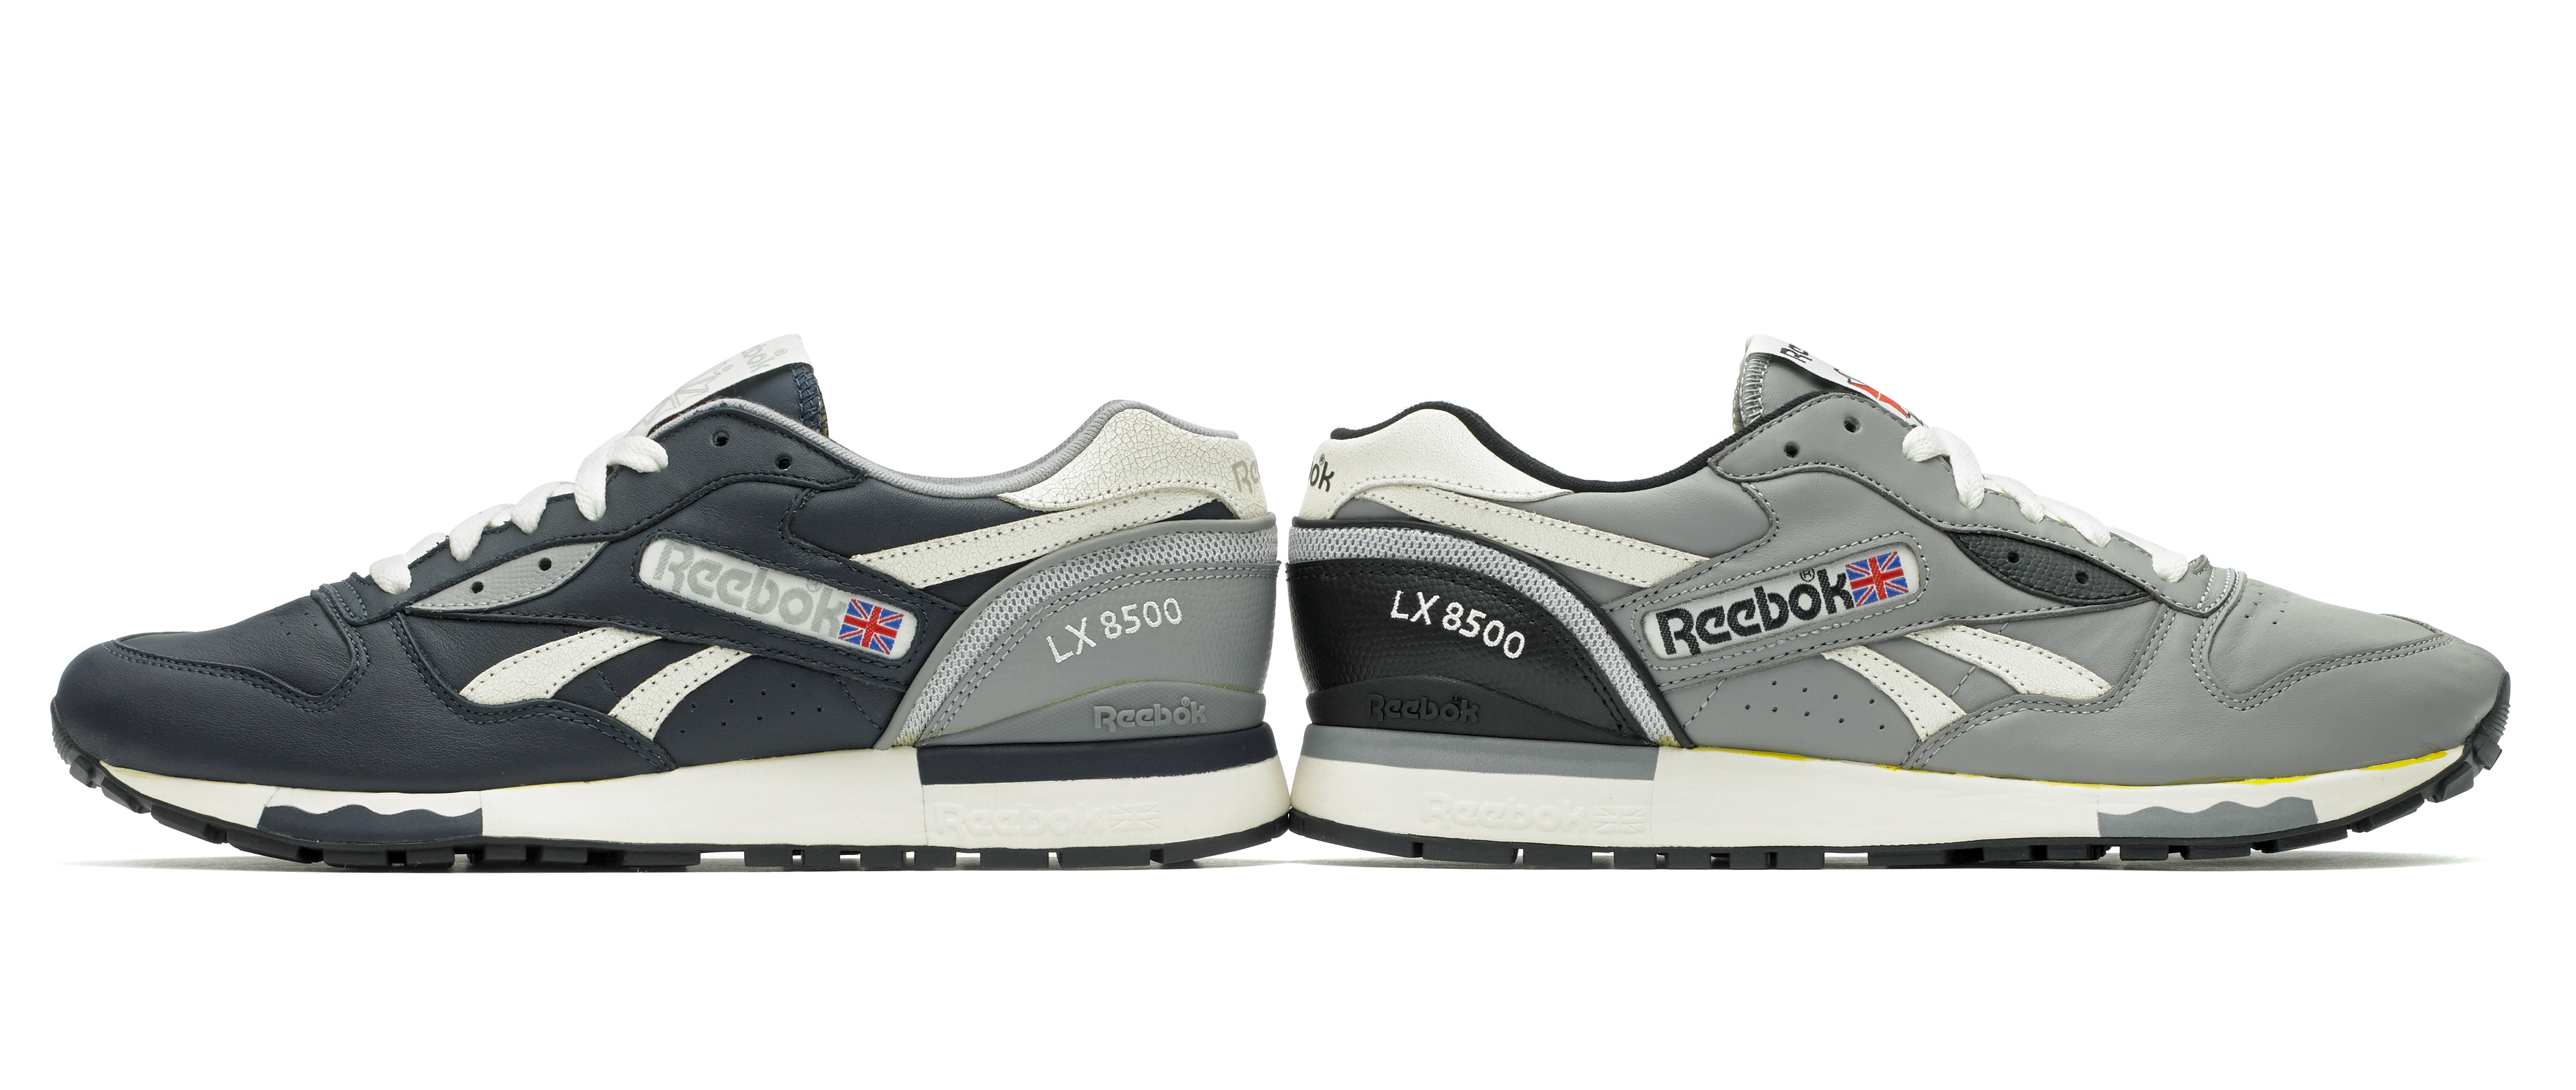 cc4f3ba2638966 LX 8500 now available from Reebok UK   US Stores